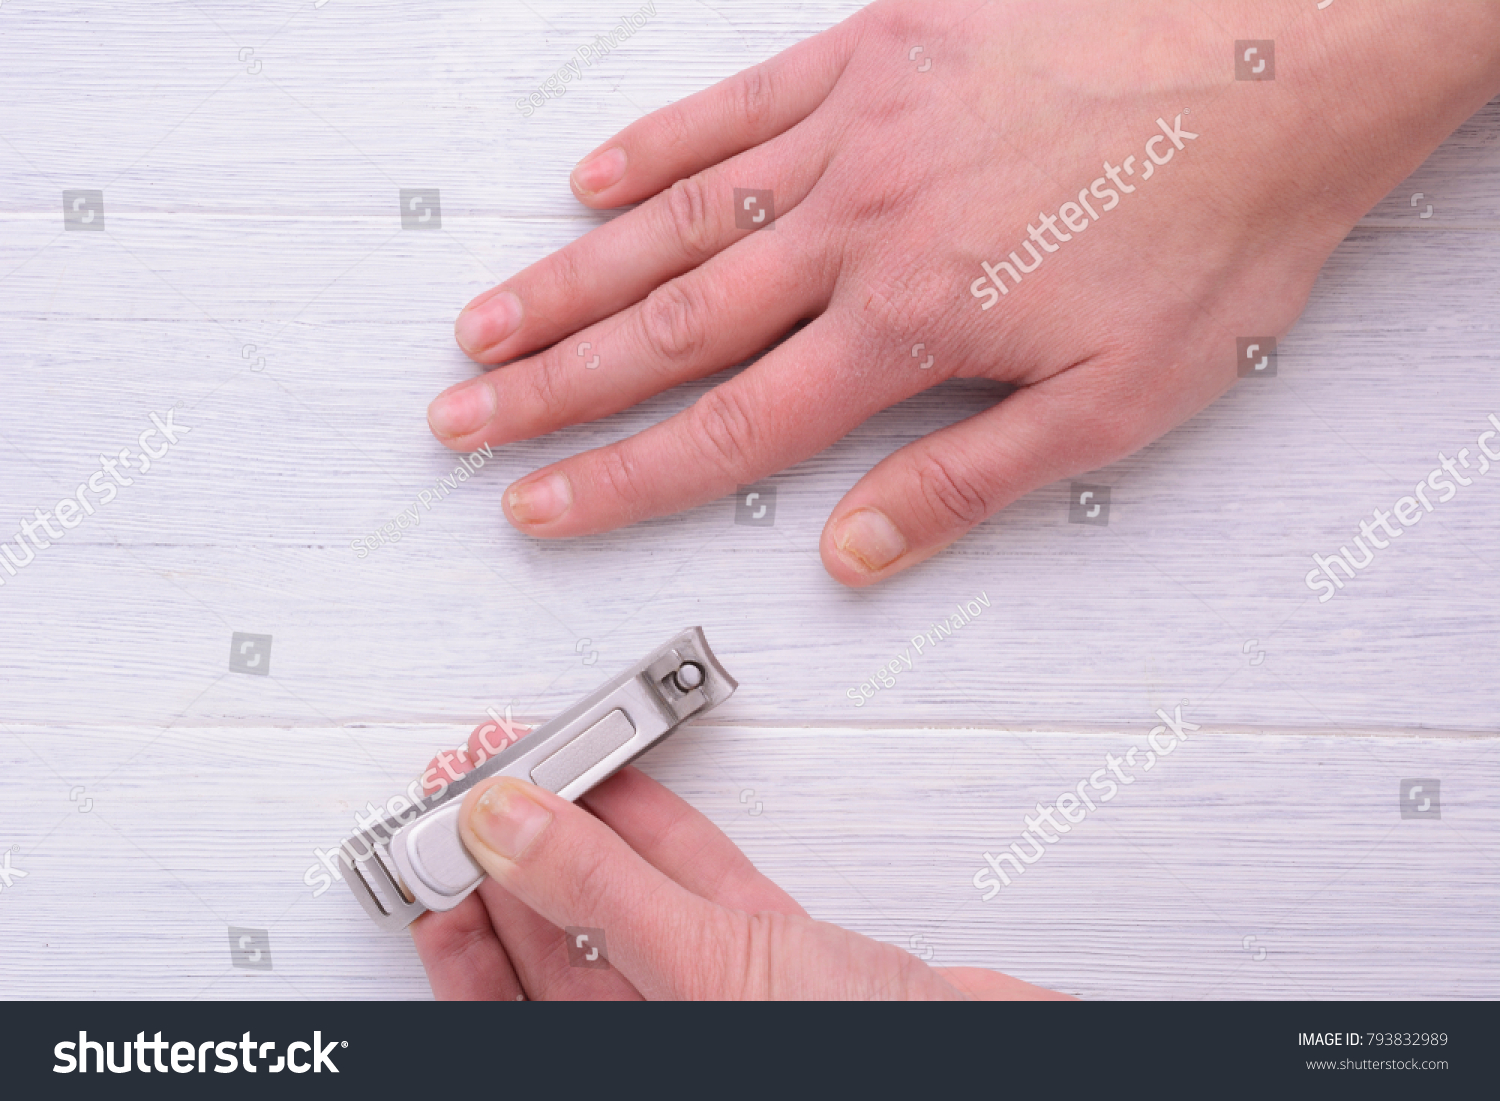 Damage Nail After Using Shellac Gellacquer Stock Photo (Royalty Free ...